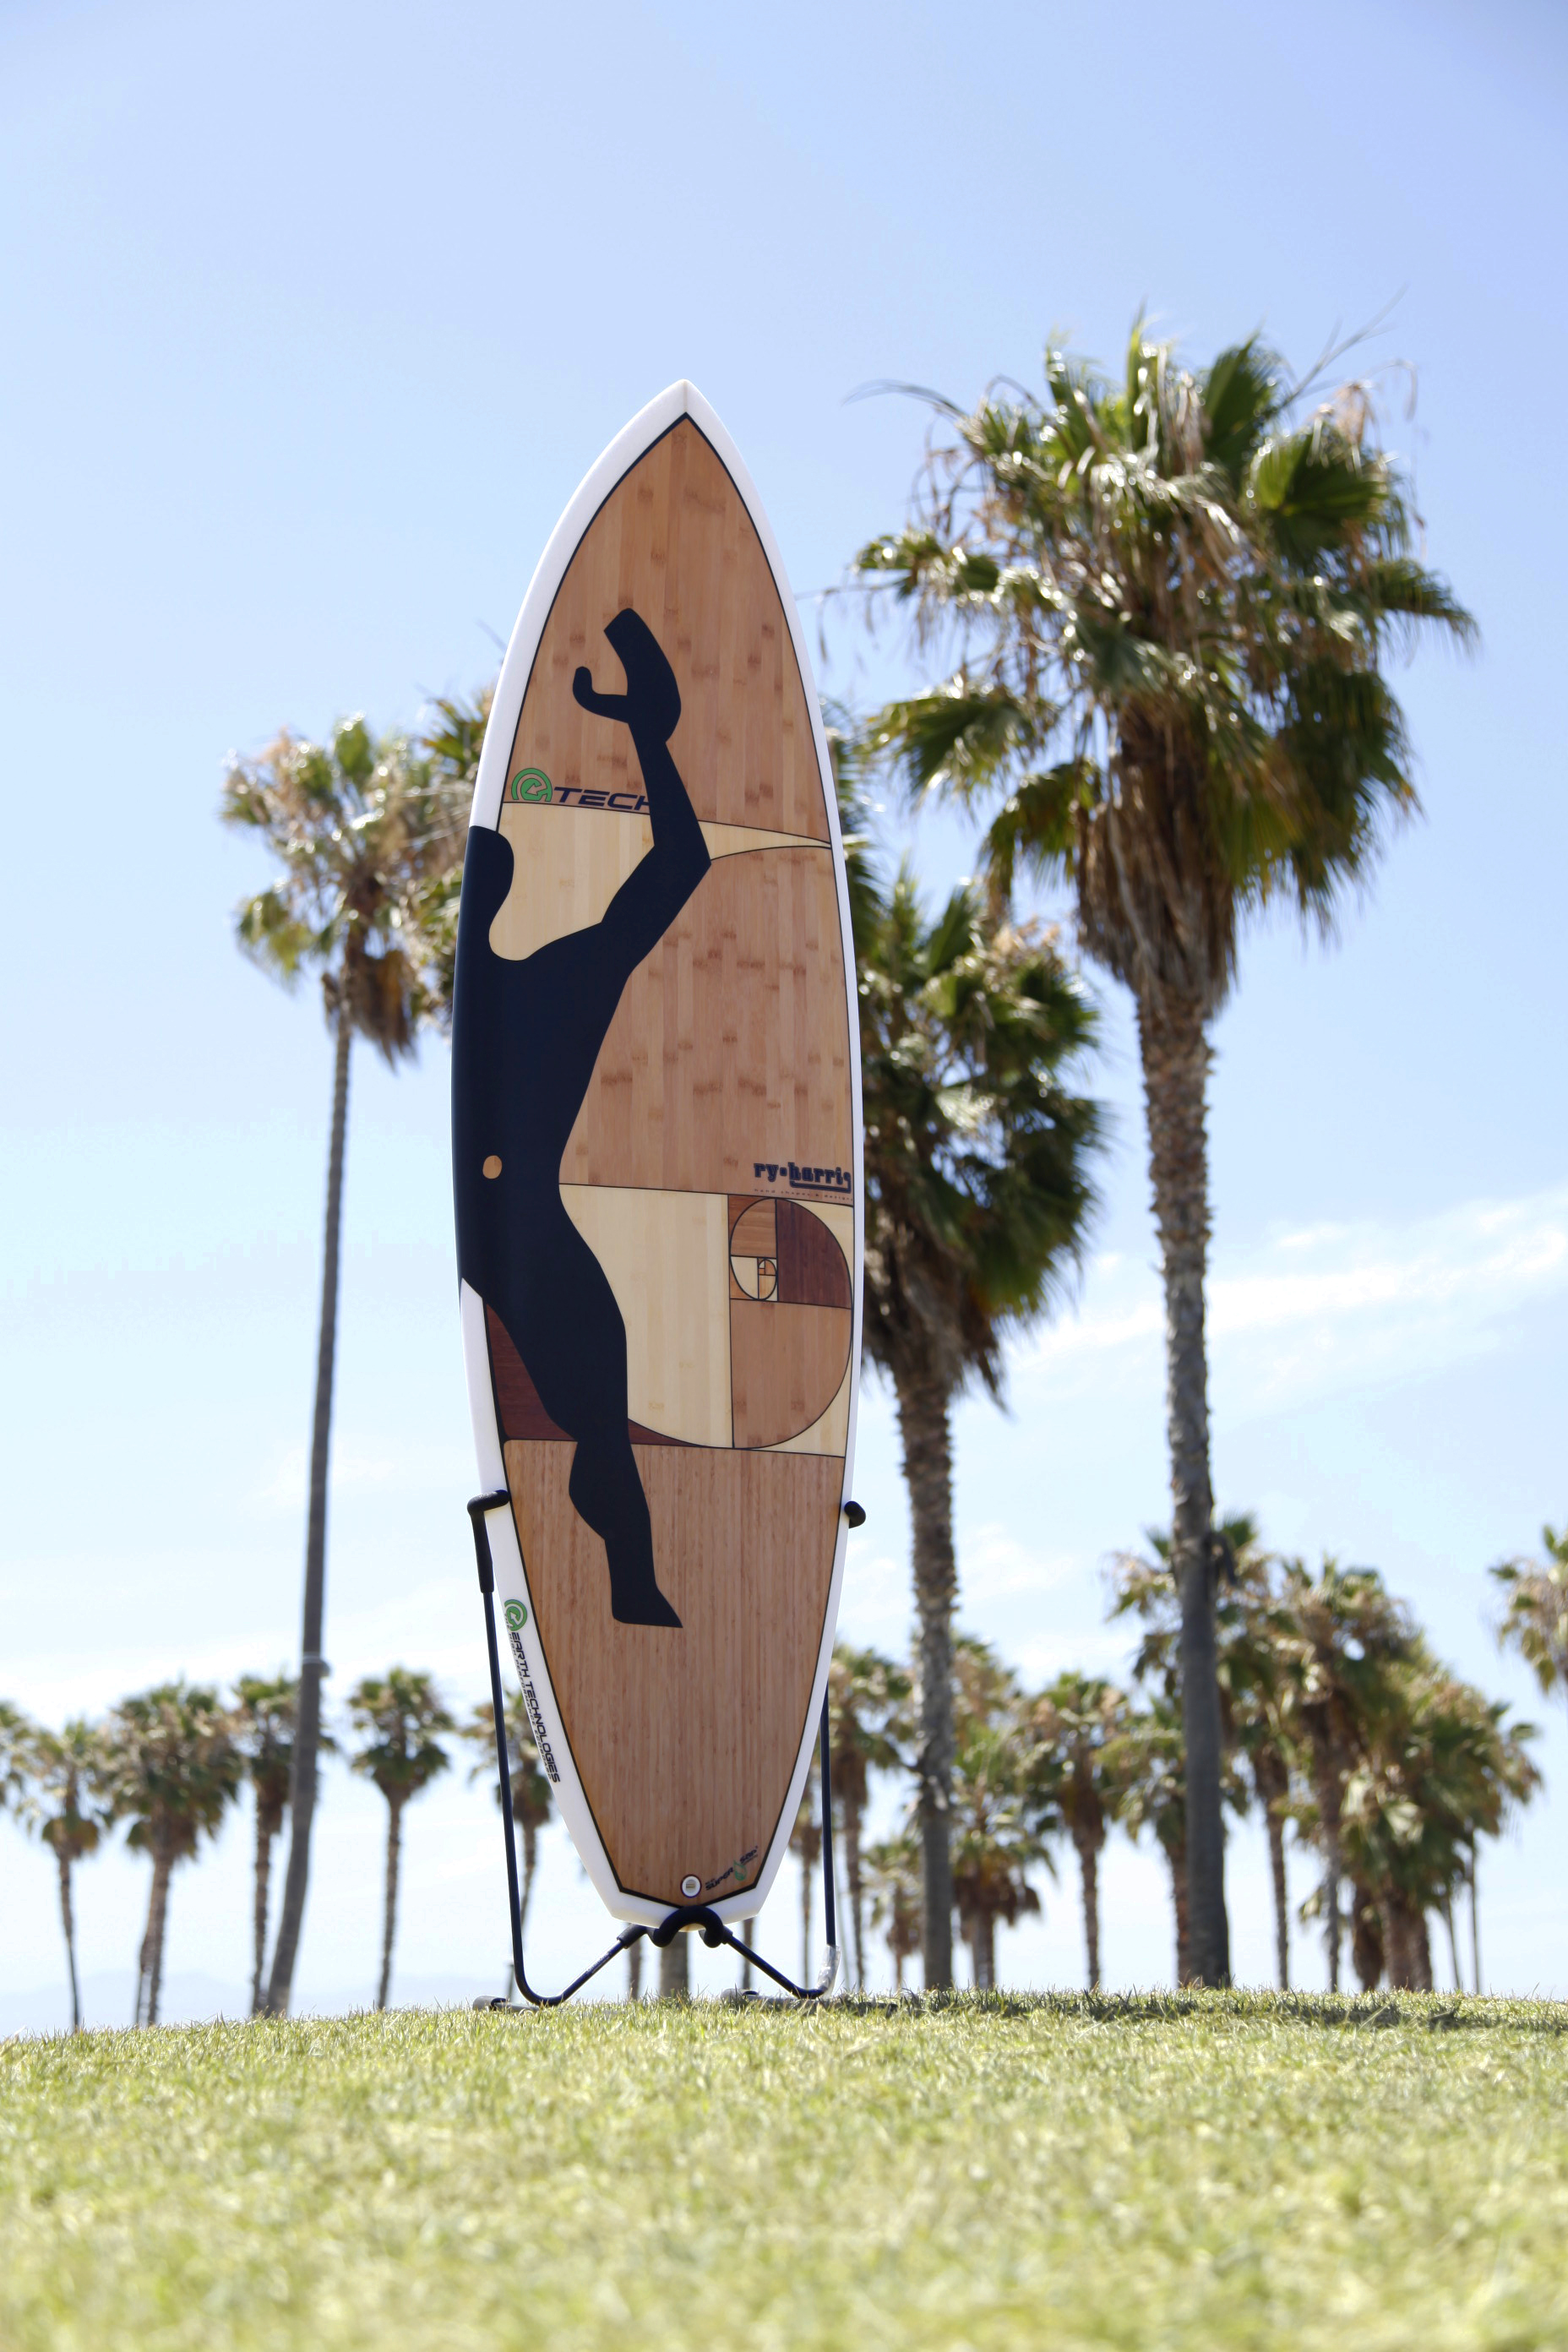 S.E.A.-Studio-Environmental-Architecture-David-Hertz-FAIA-A+D-Museum-Surfboard-Venice-Beach-California-sustainable-regenerative-restorative-green-design-Le-Corbusier-Modular-Vitruvian-Man-graphic-shortboard-recycled-bamboo-Super-Sap-biobased-custom-1.jpg